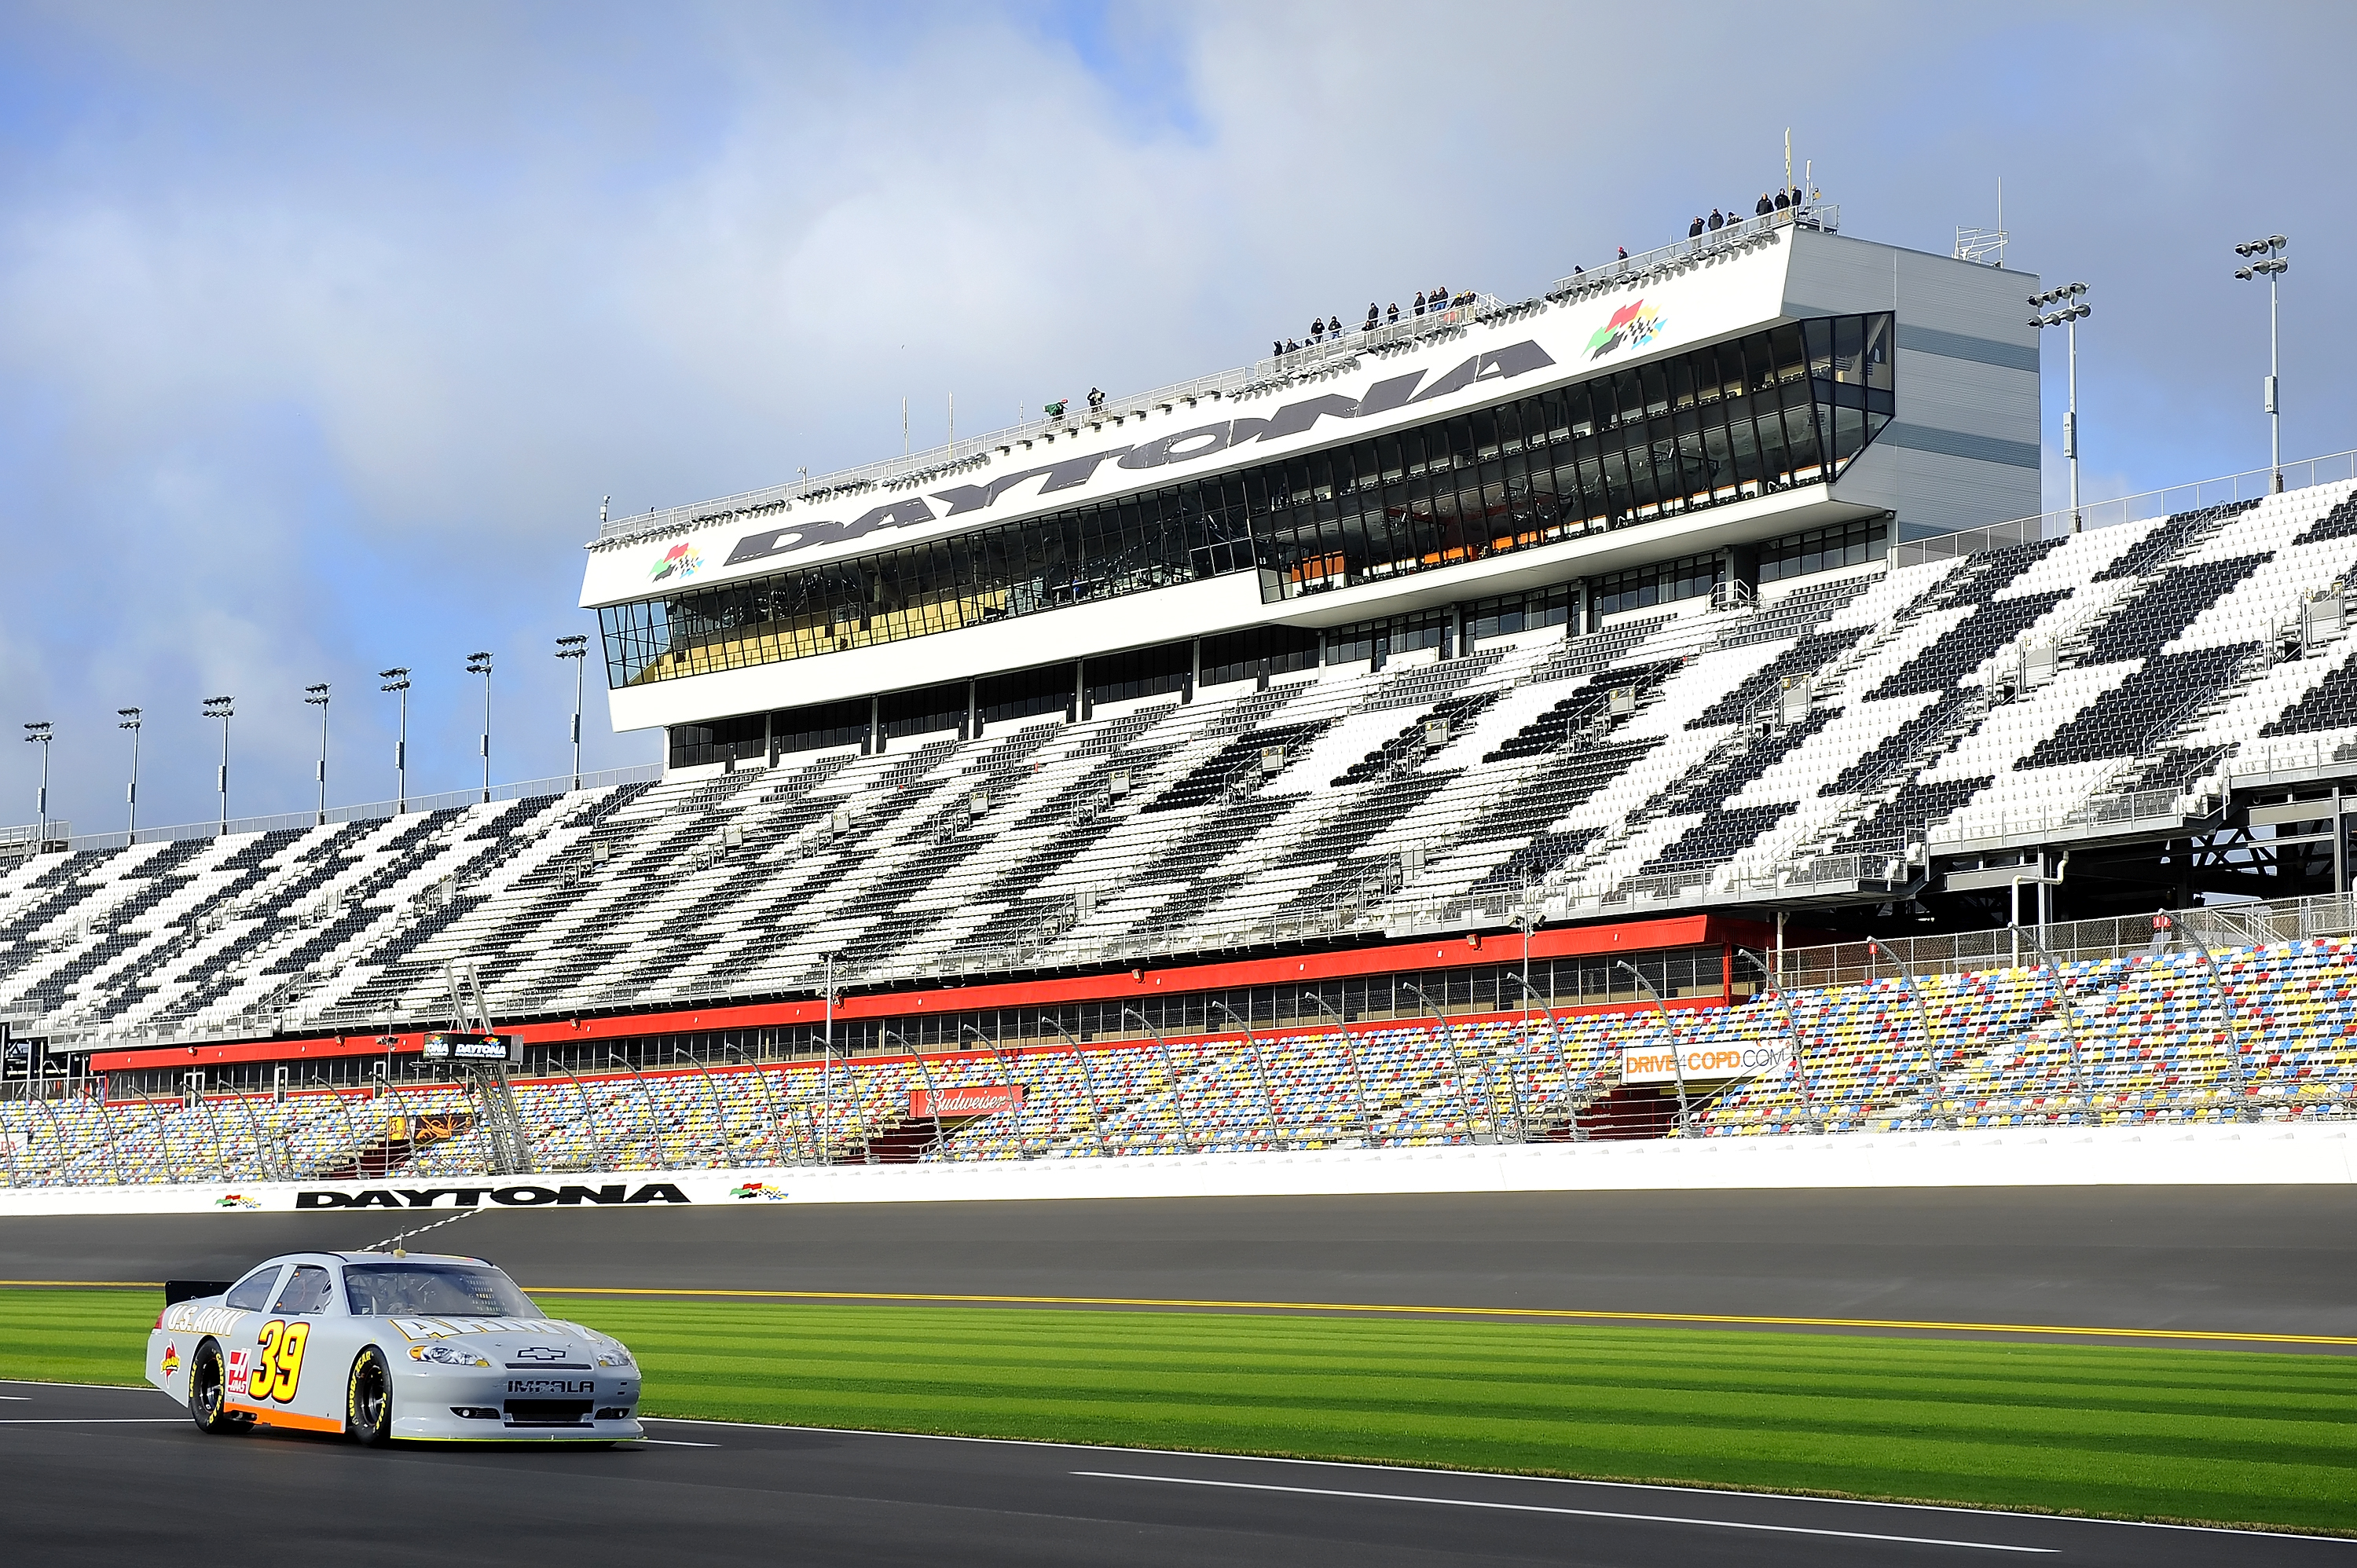 DAYTONA BEACH, FL - JANUARY 22:  Ryan Newman, driver of the #39 U.S. Army Chevrolet, drives down pit road during testing at Daytona International Speedway on January 22, 2011 in Daytona Beach, Florida.  (Photo by Jared C. Tilton/Getty Images for NASCAR)